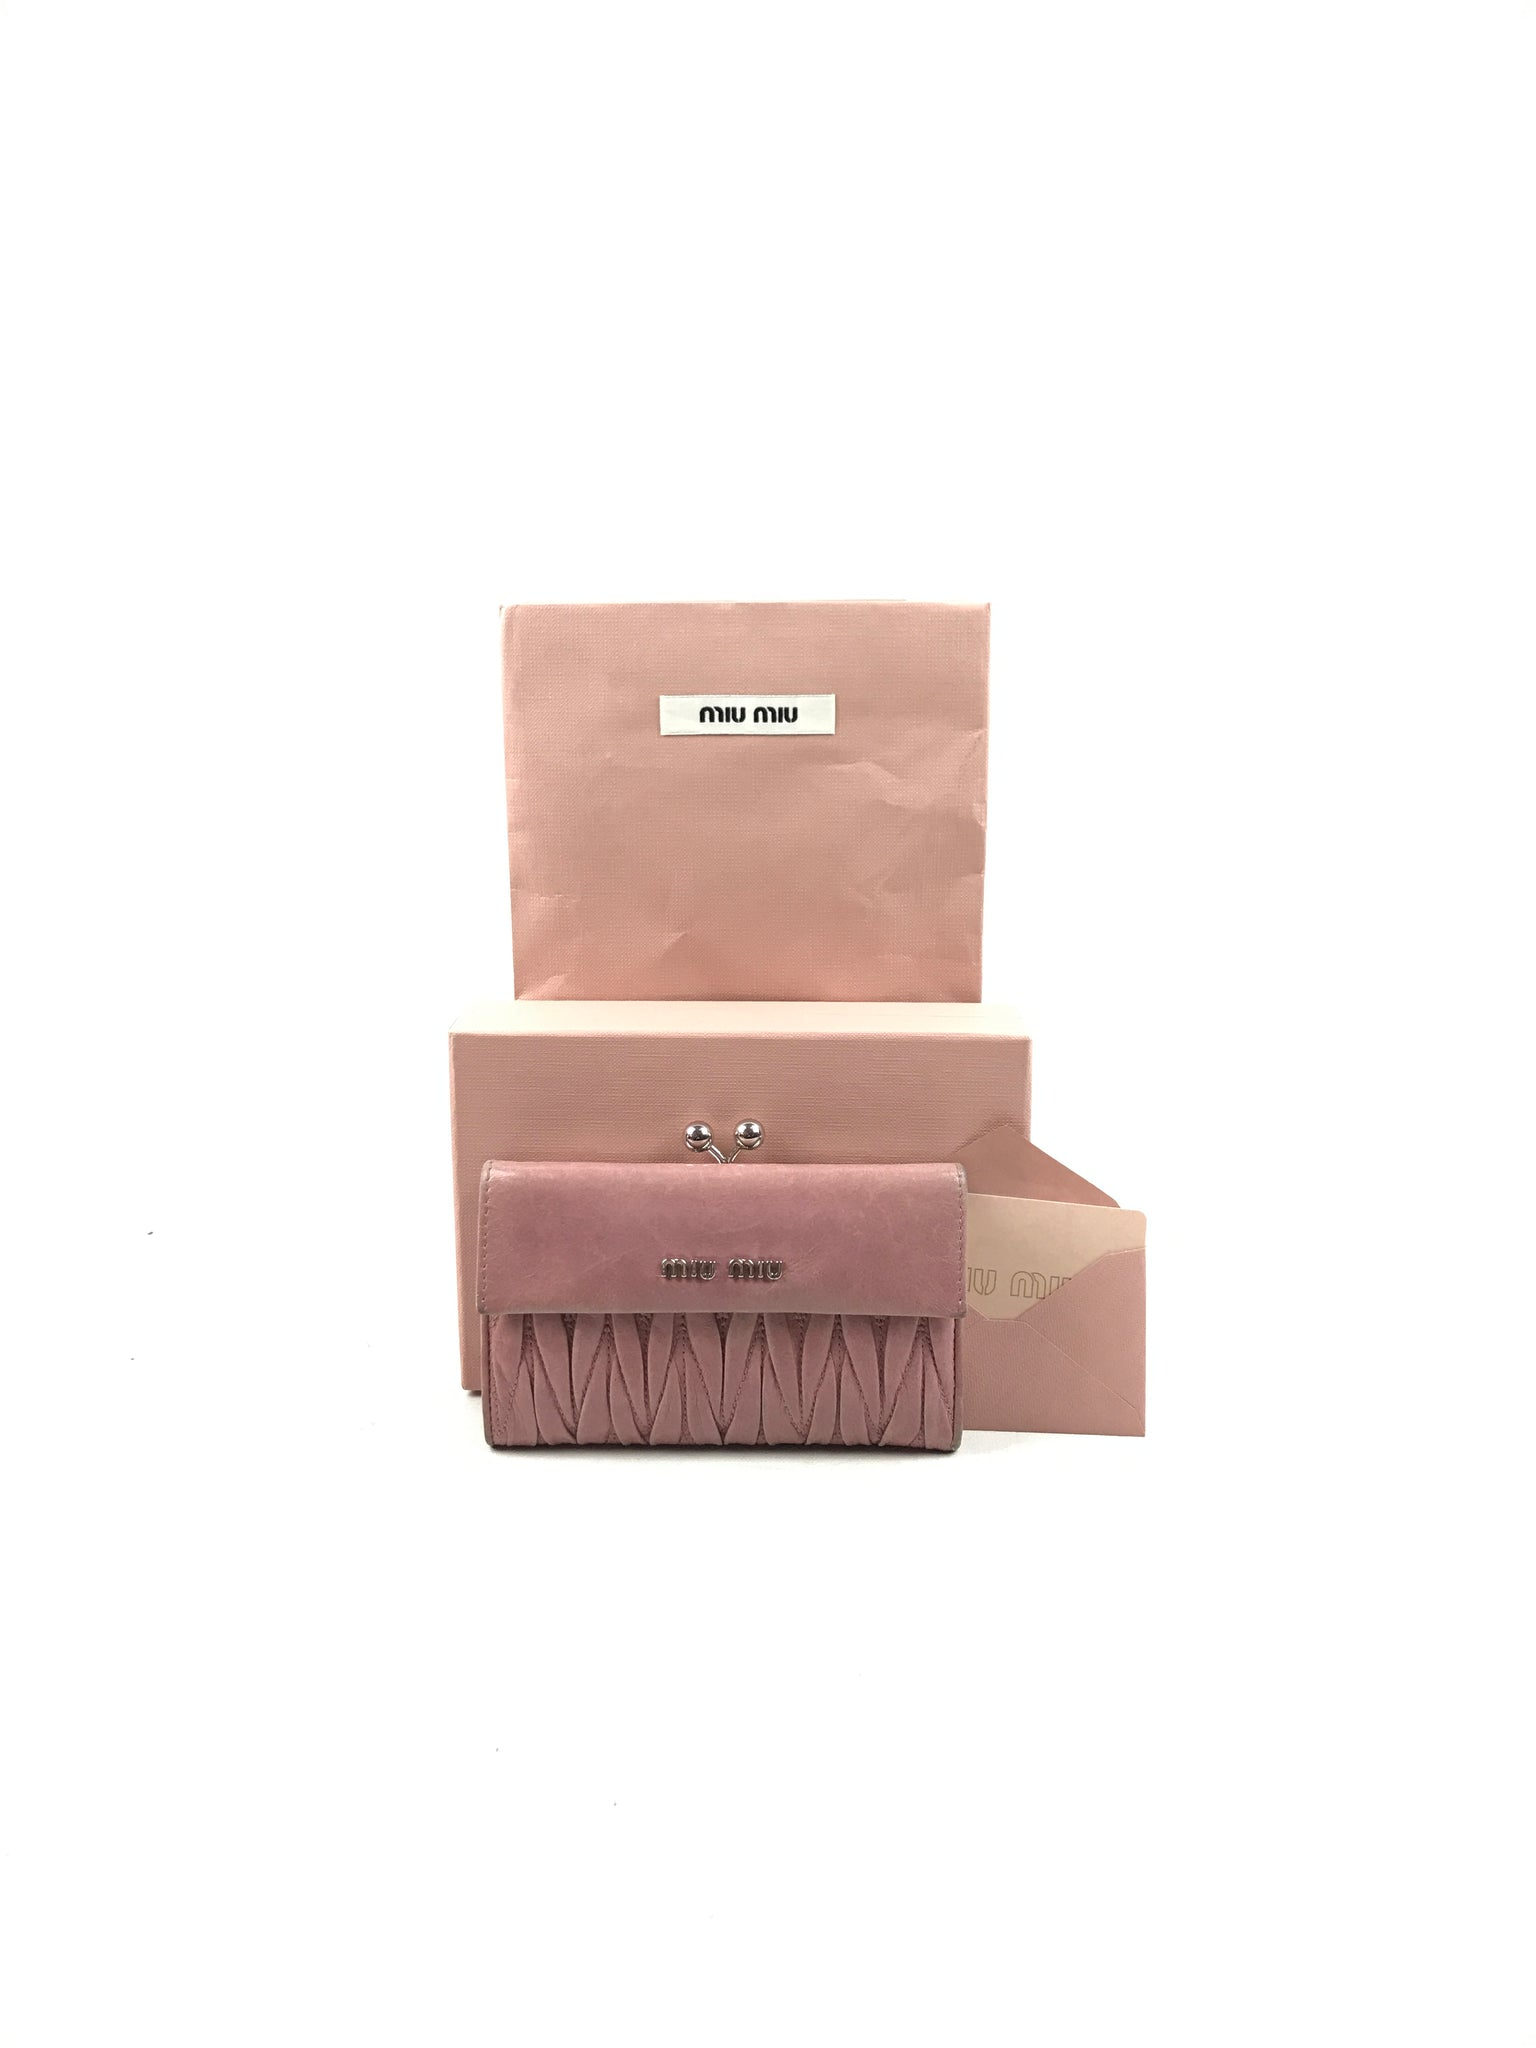 MIU MIU Light Pink Matelasse'Lux Leather Wallet